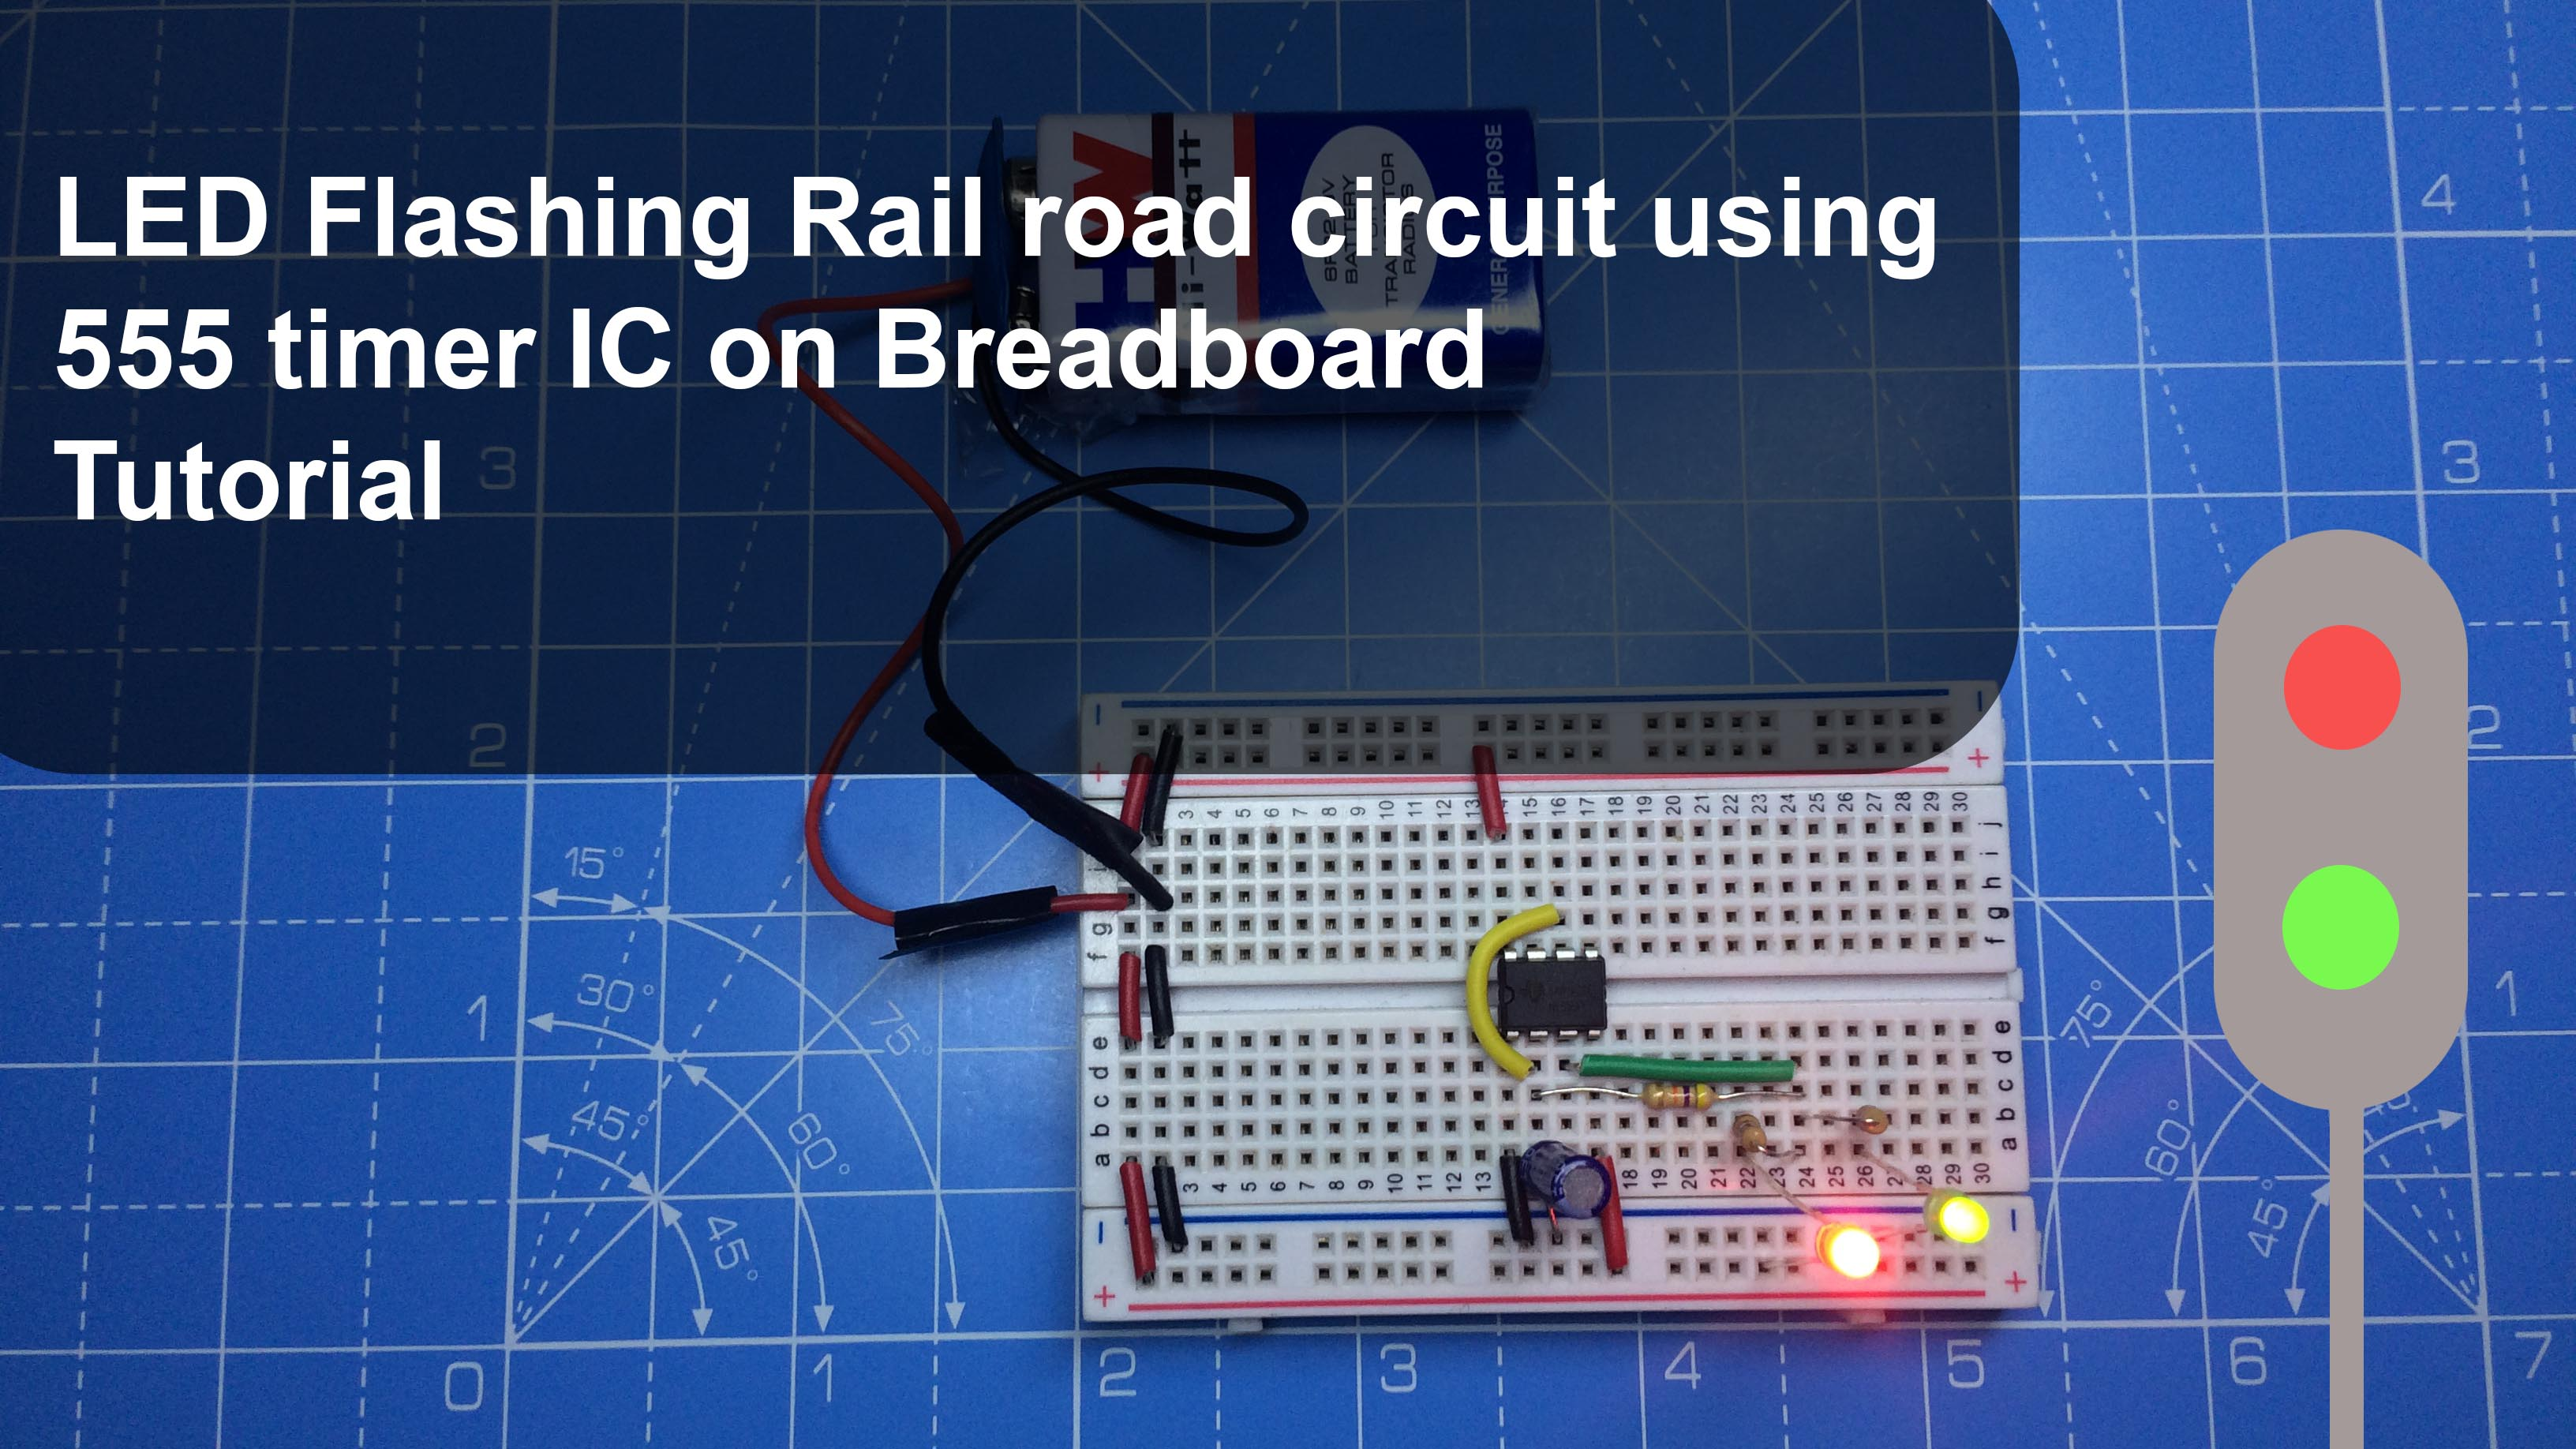 LED Flashing Rail road circuit using 555 timer IC – Breadboard